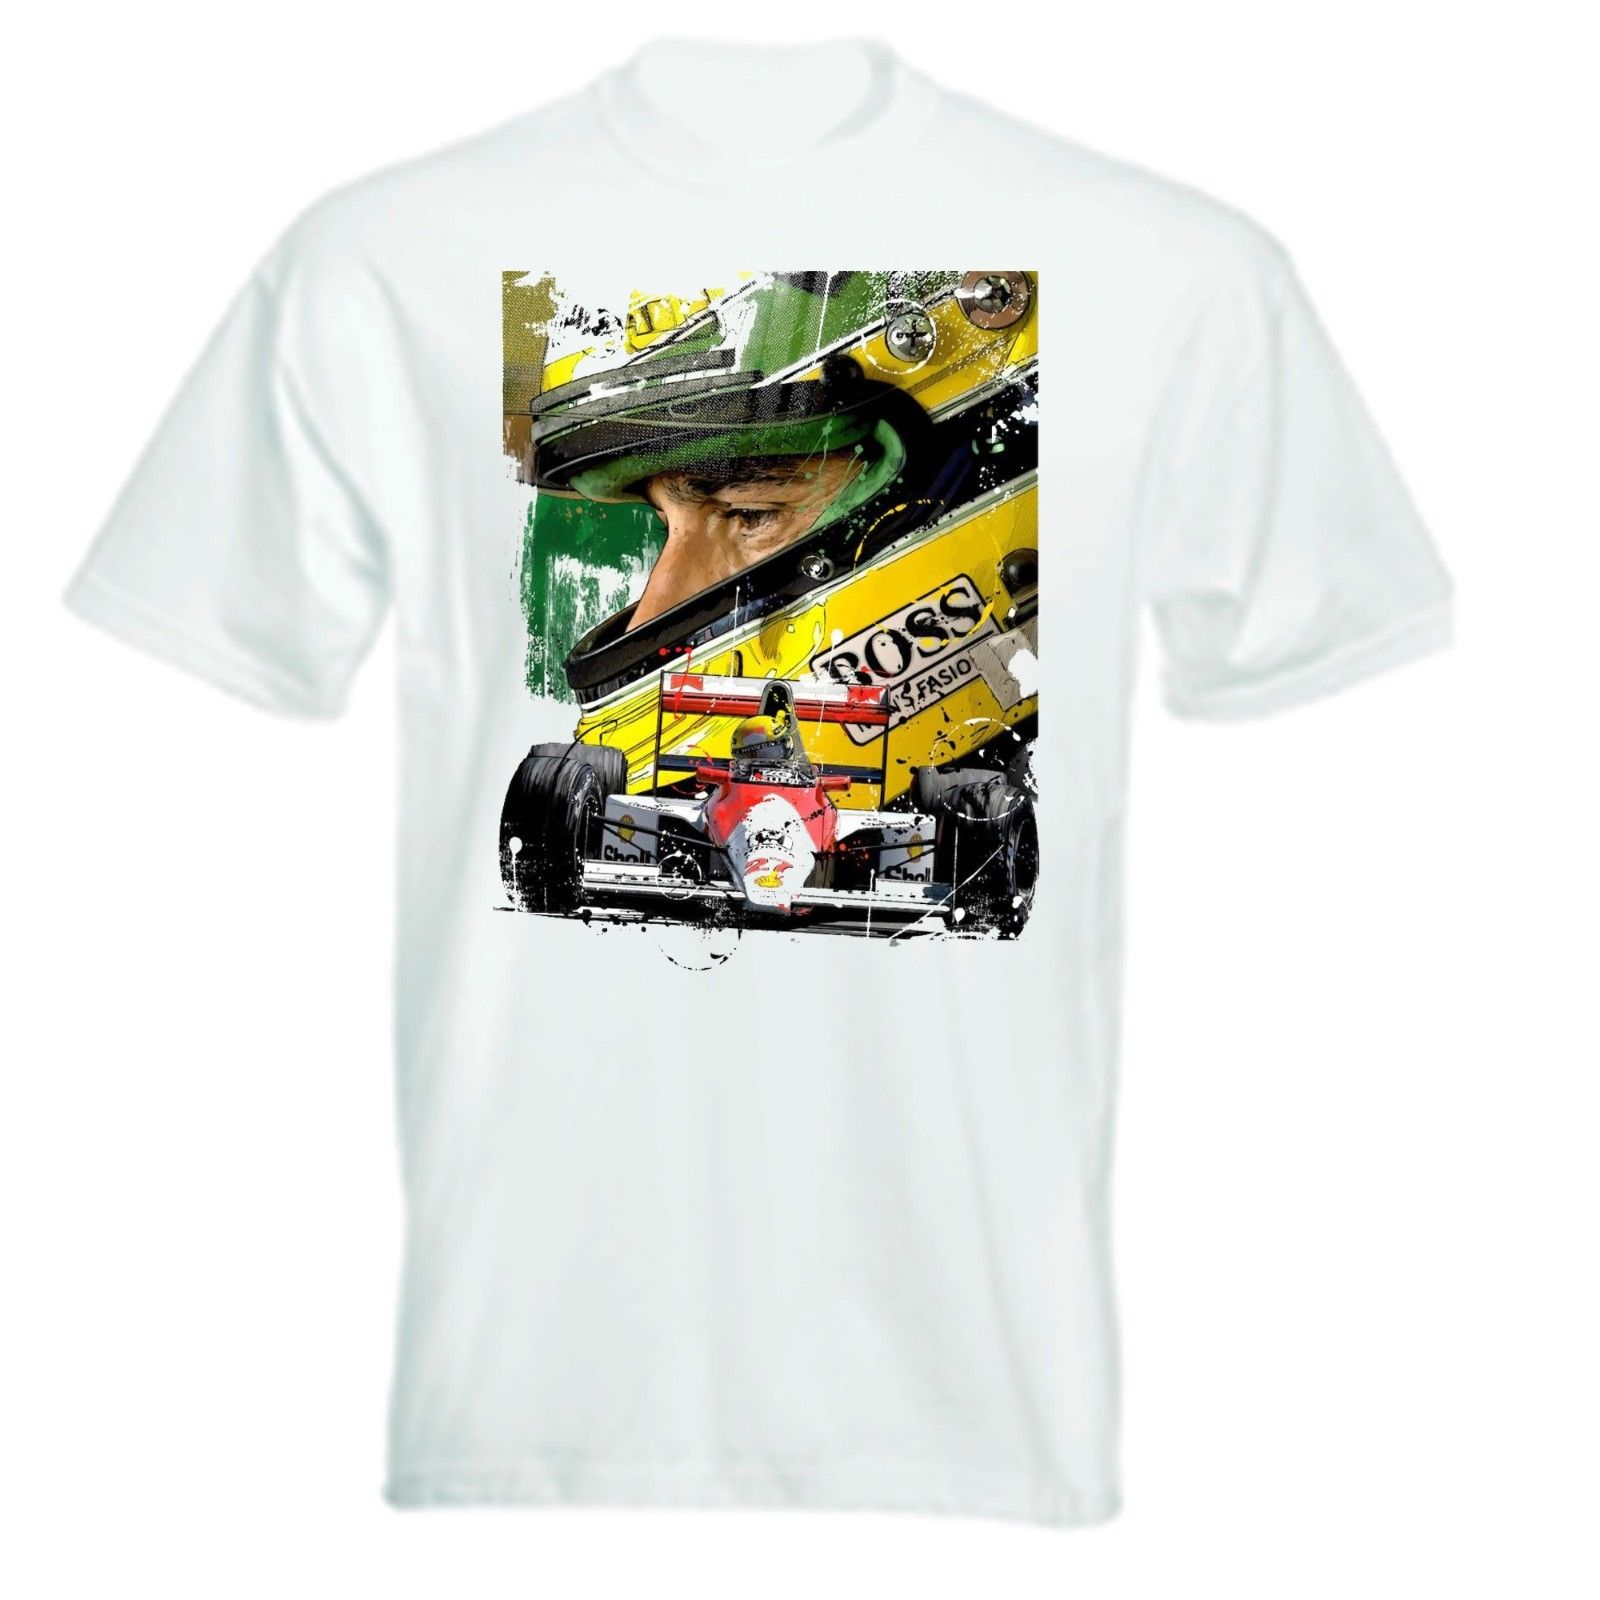 AYRTON SENNA ARTWORK T SHIRT Cool Casual pride t shirt men Unisex New Fashion tshirt Loose Size top ajax